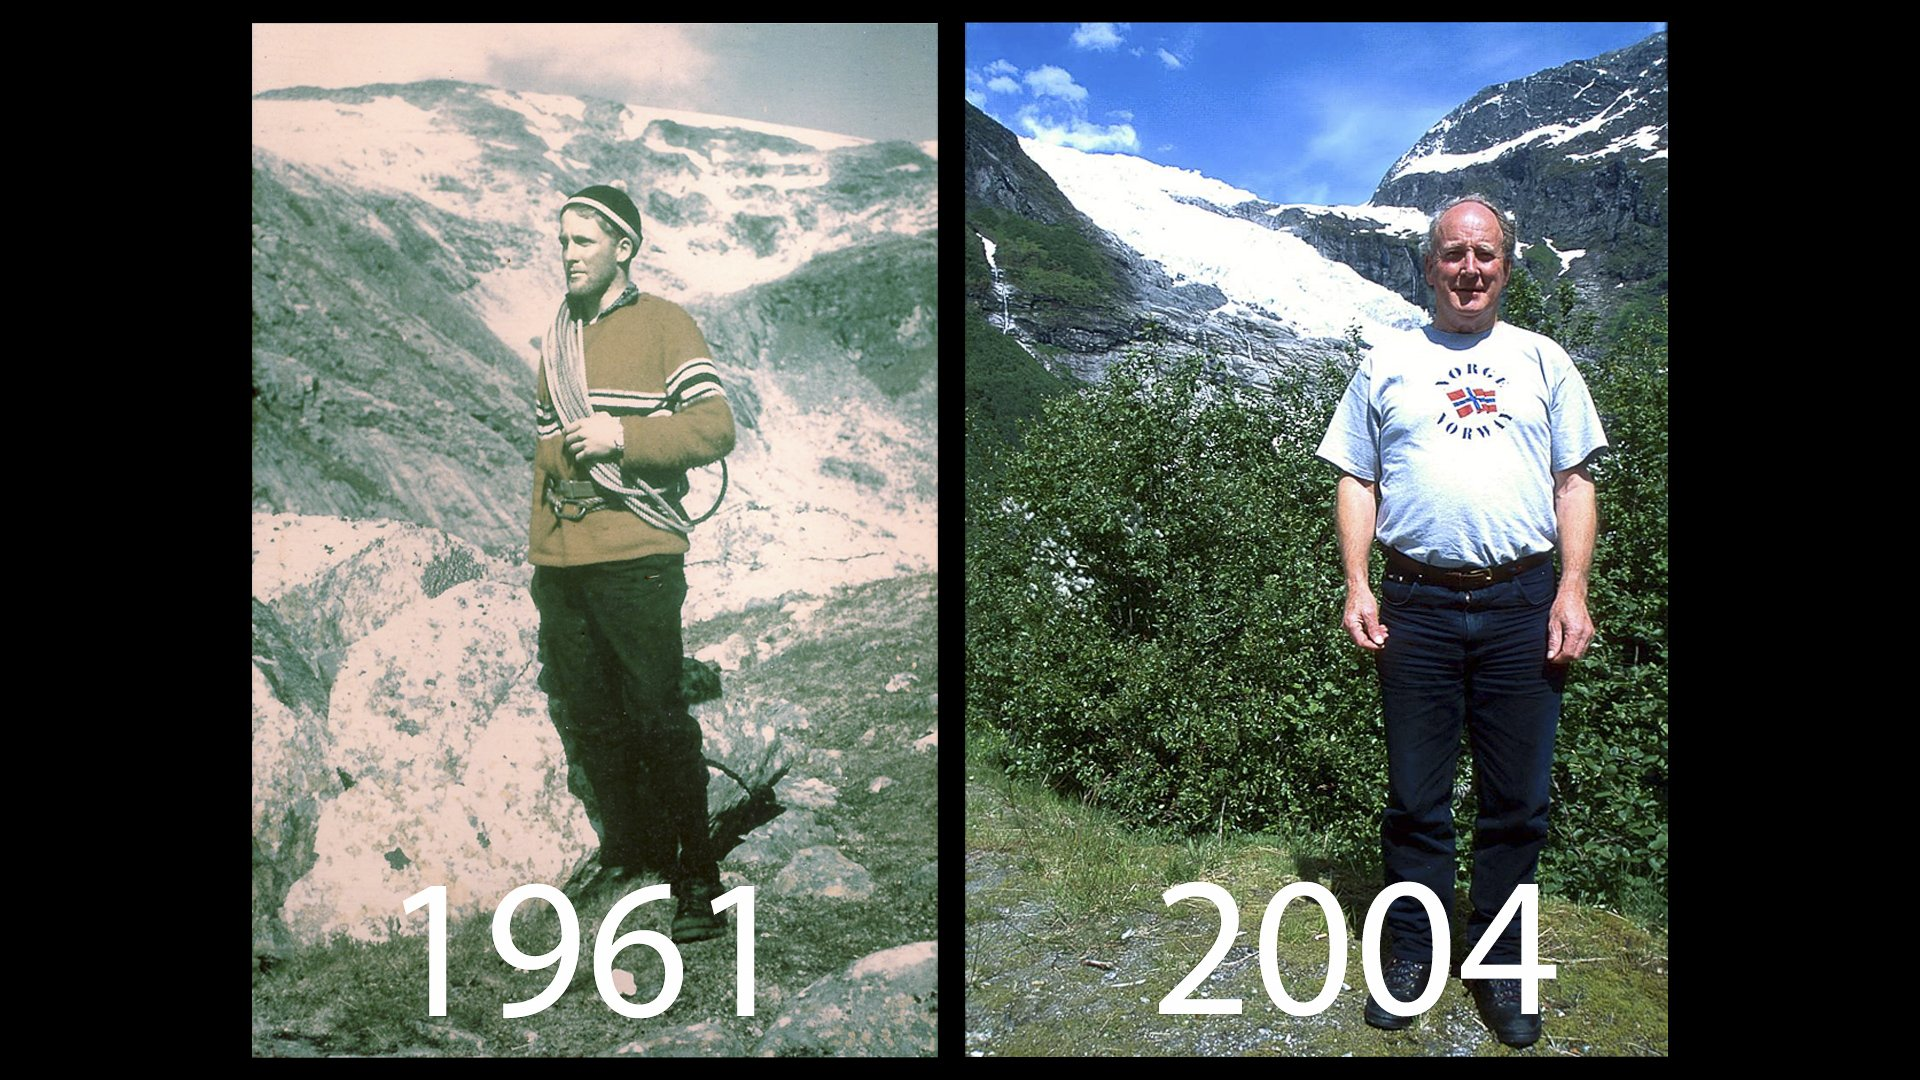 While in the Navy he was part of the Raleigh Society and participated in the Royal Naval Colleges 'Norped '61' Ski Expedition to Jostedalsbreen, Norway.  In 2004 he returned with his daughter and son-in-law to the Jostedal Glacier, and was delighted to be back after an absence of 43 years